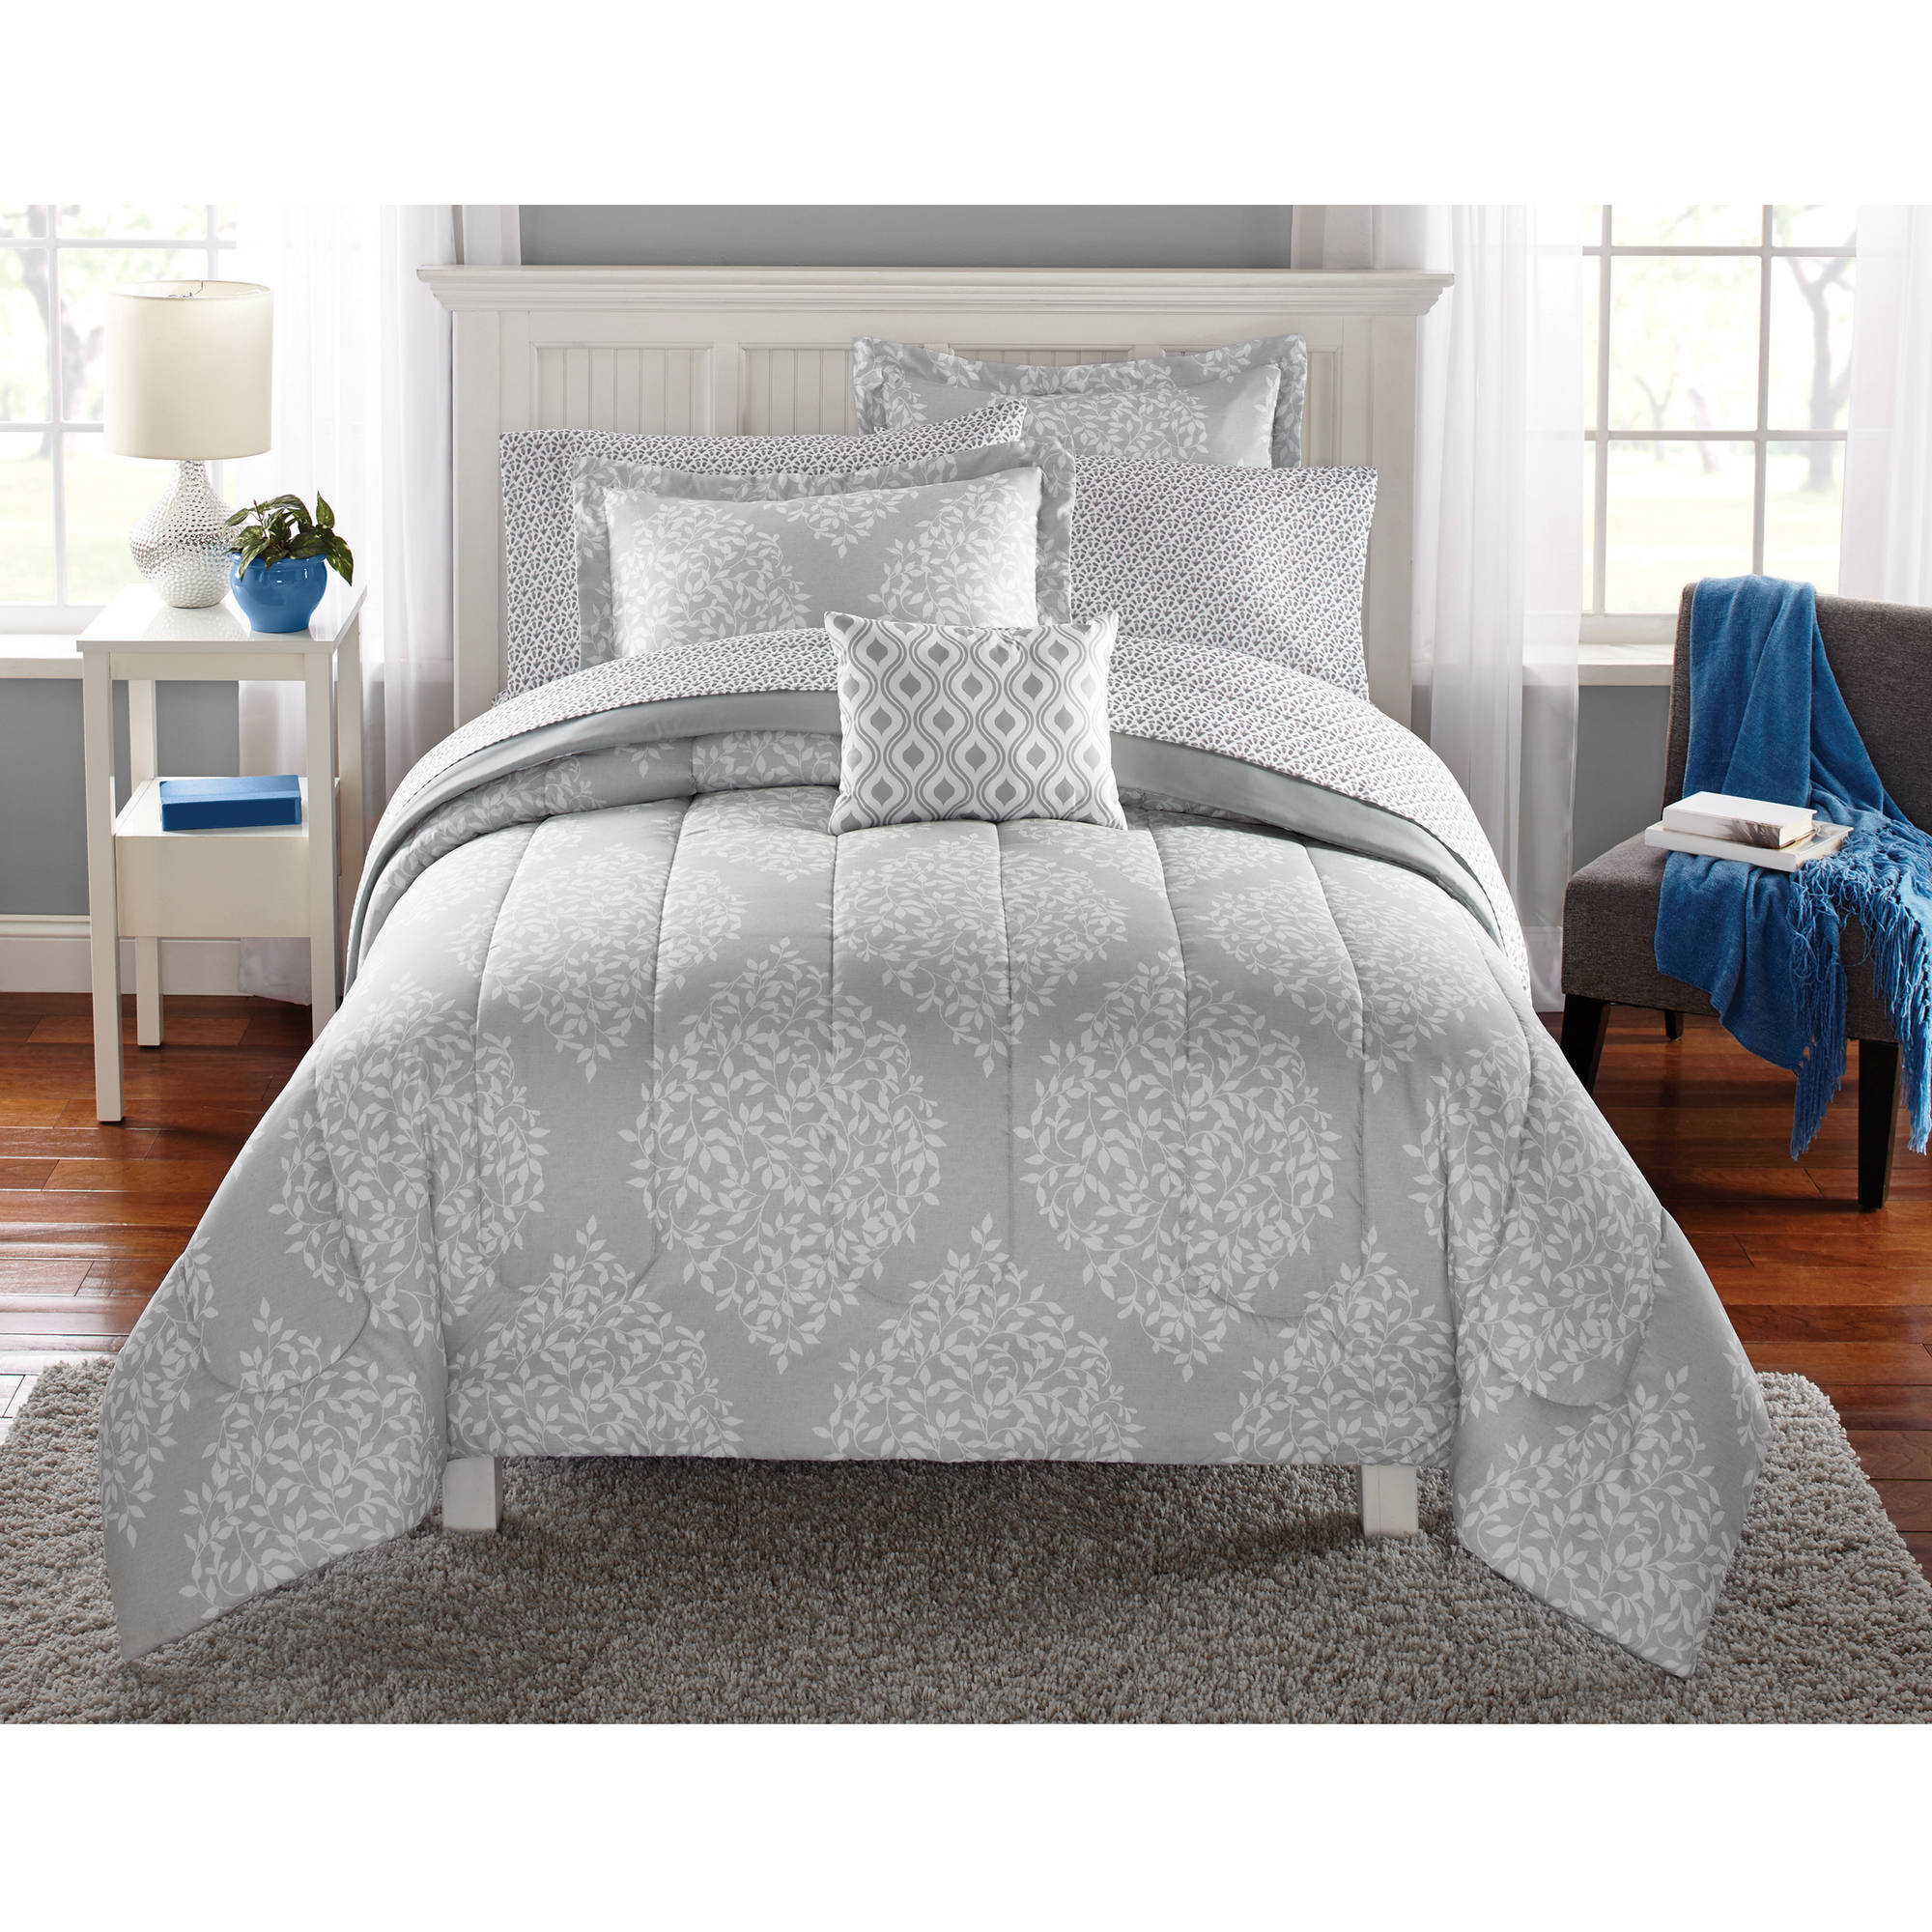 tips bedroom inside luxury bedding twin outstanding idea bedspread queen residence cheap size bed white comforter sets bedspreads beds for your